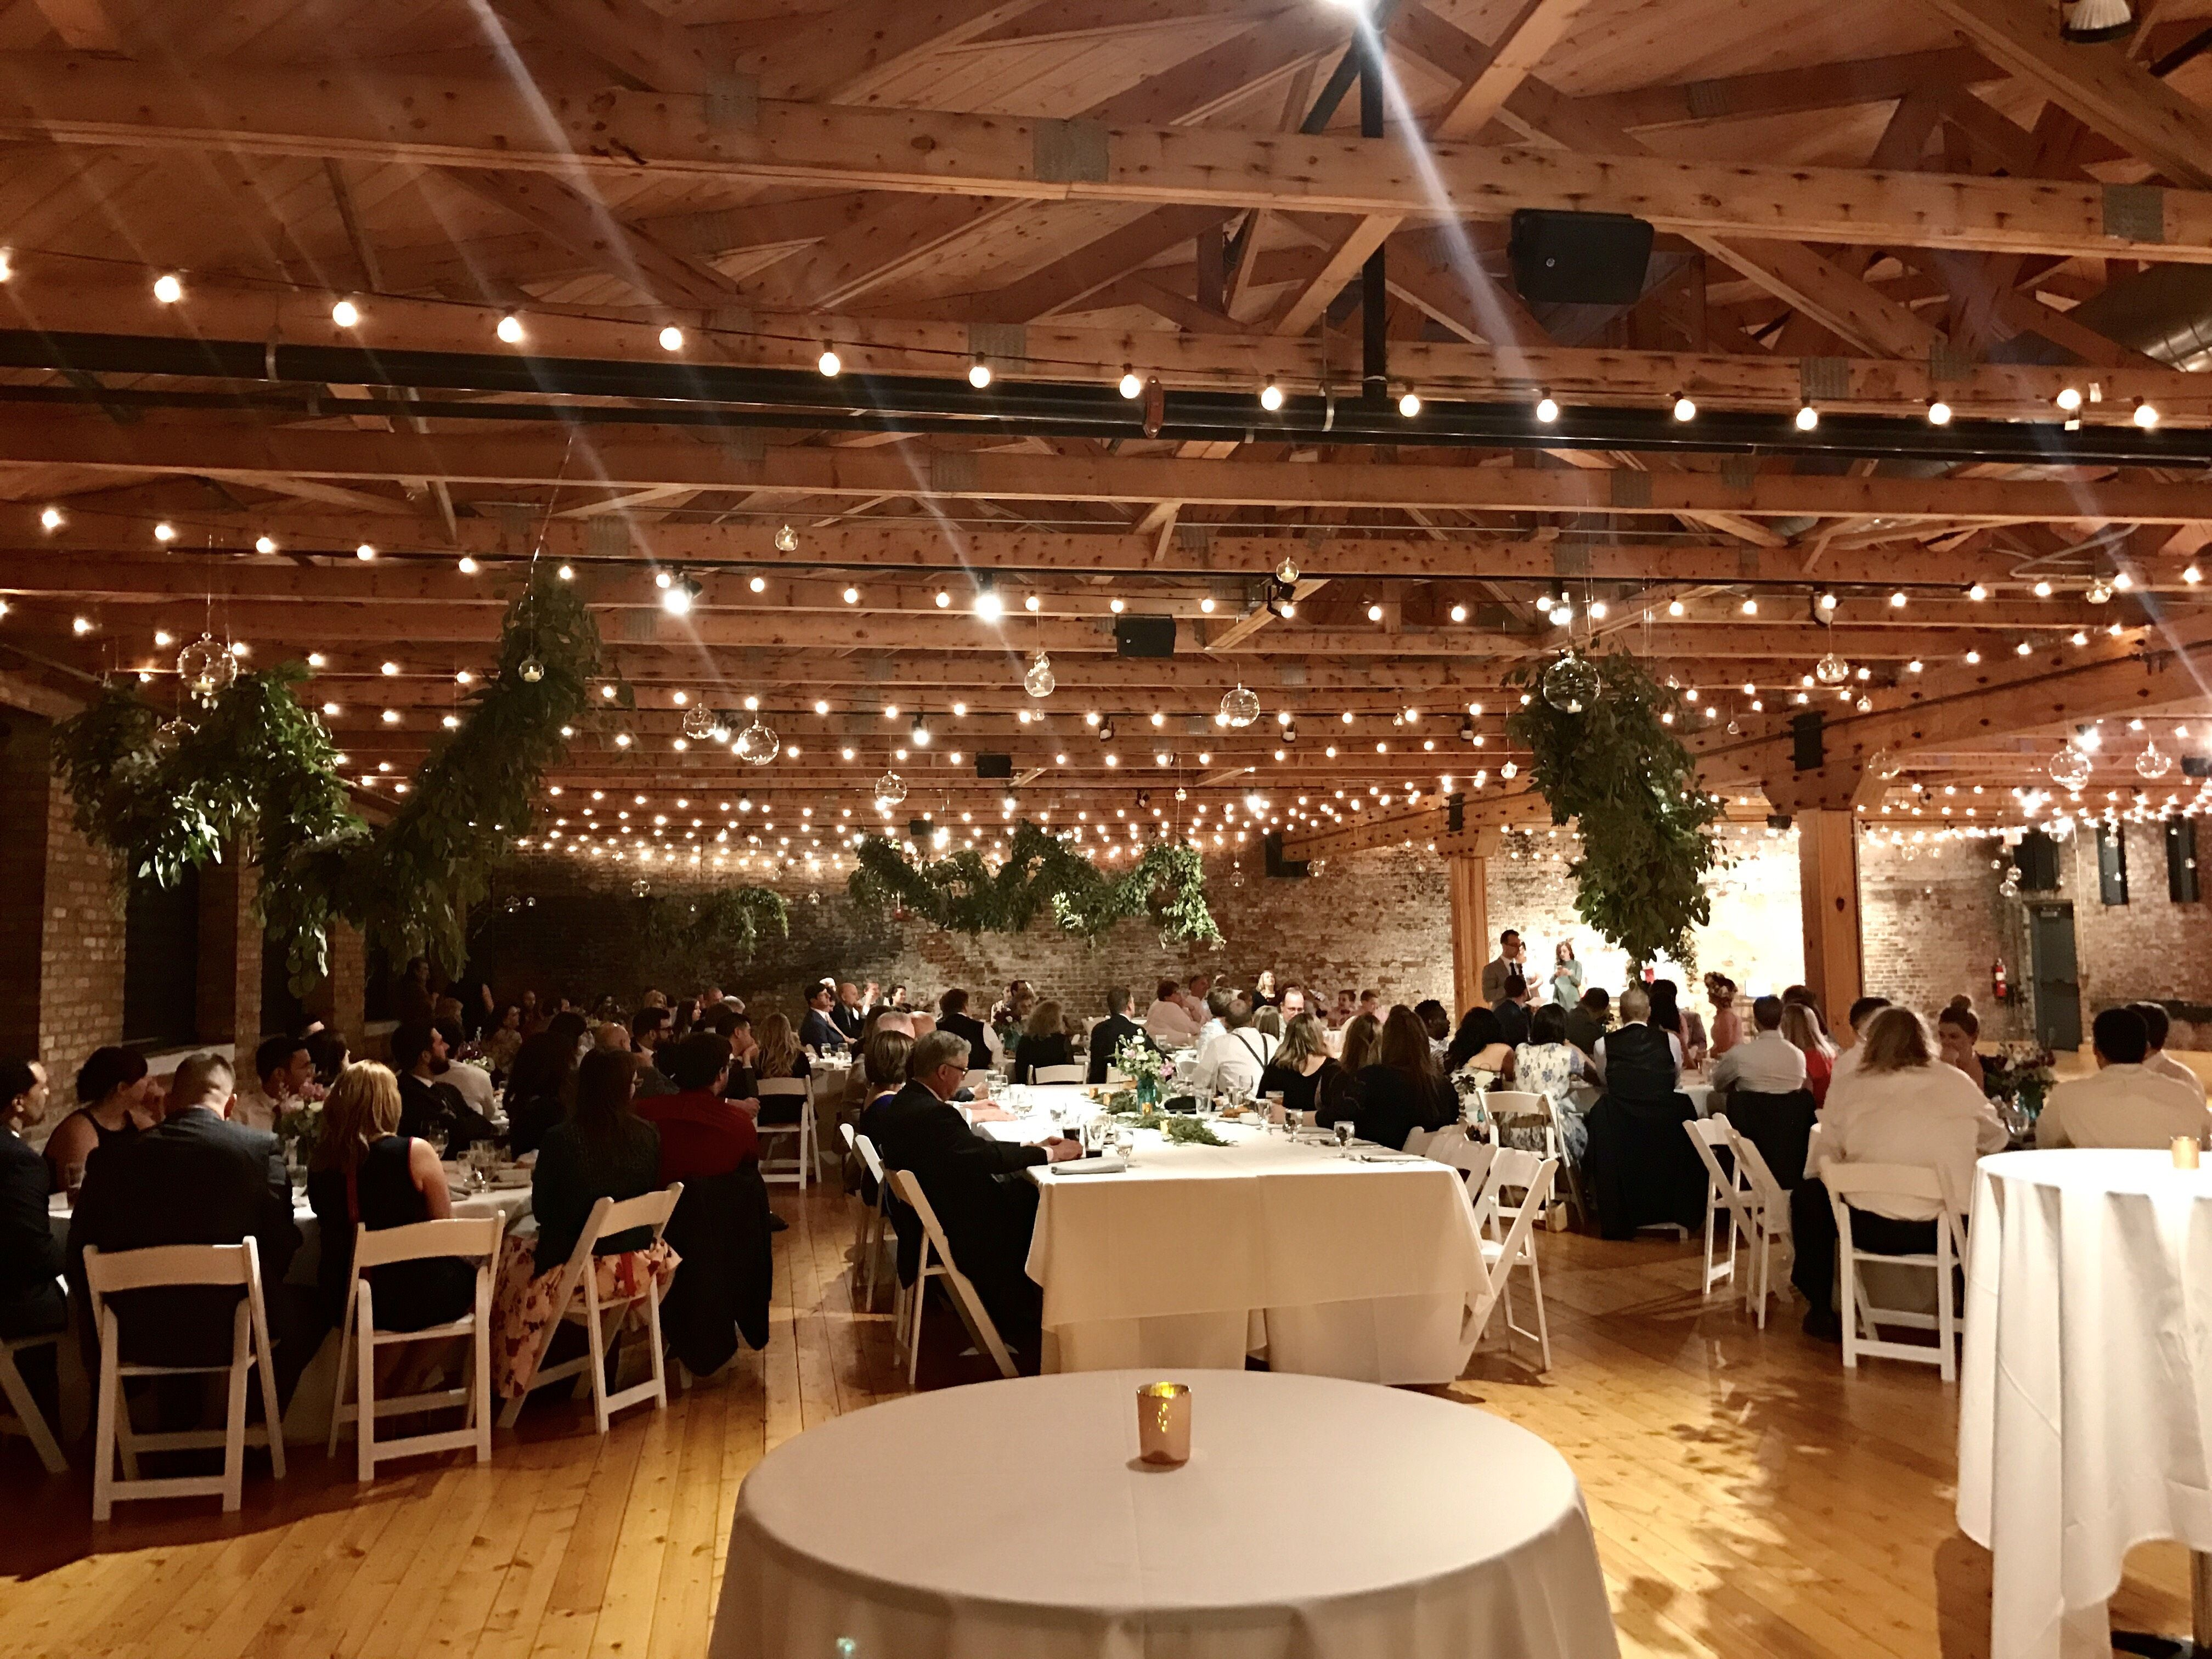 The Clubhouse Rhinegeist Brewery Brewery Wedding Ohio Wedding Venues Cincinnati Wedding Venues